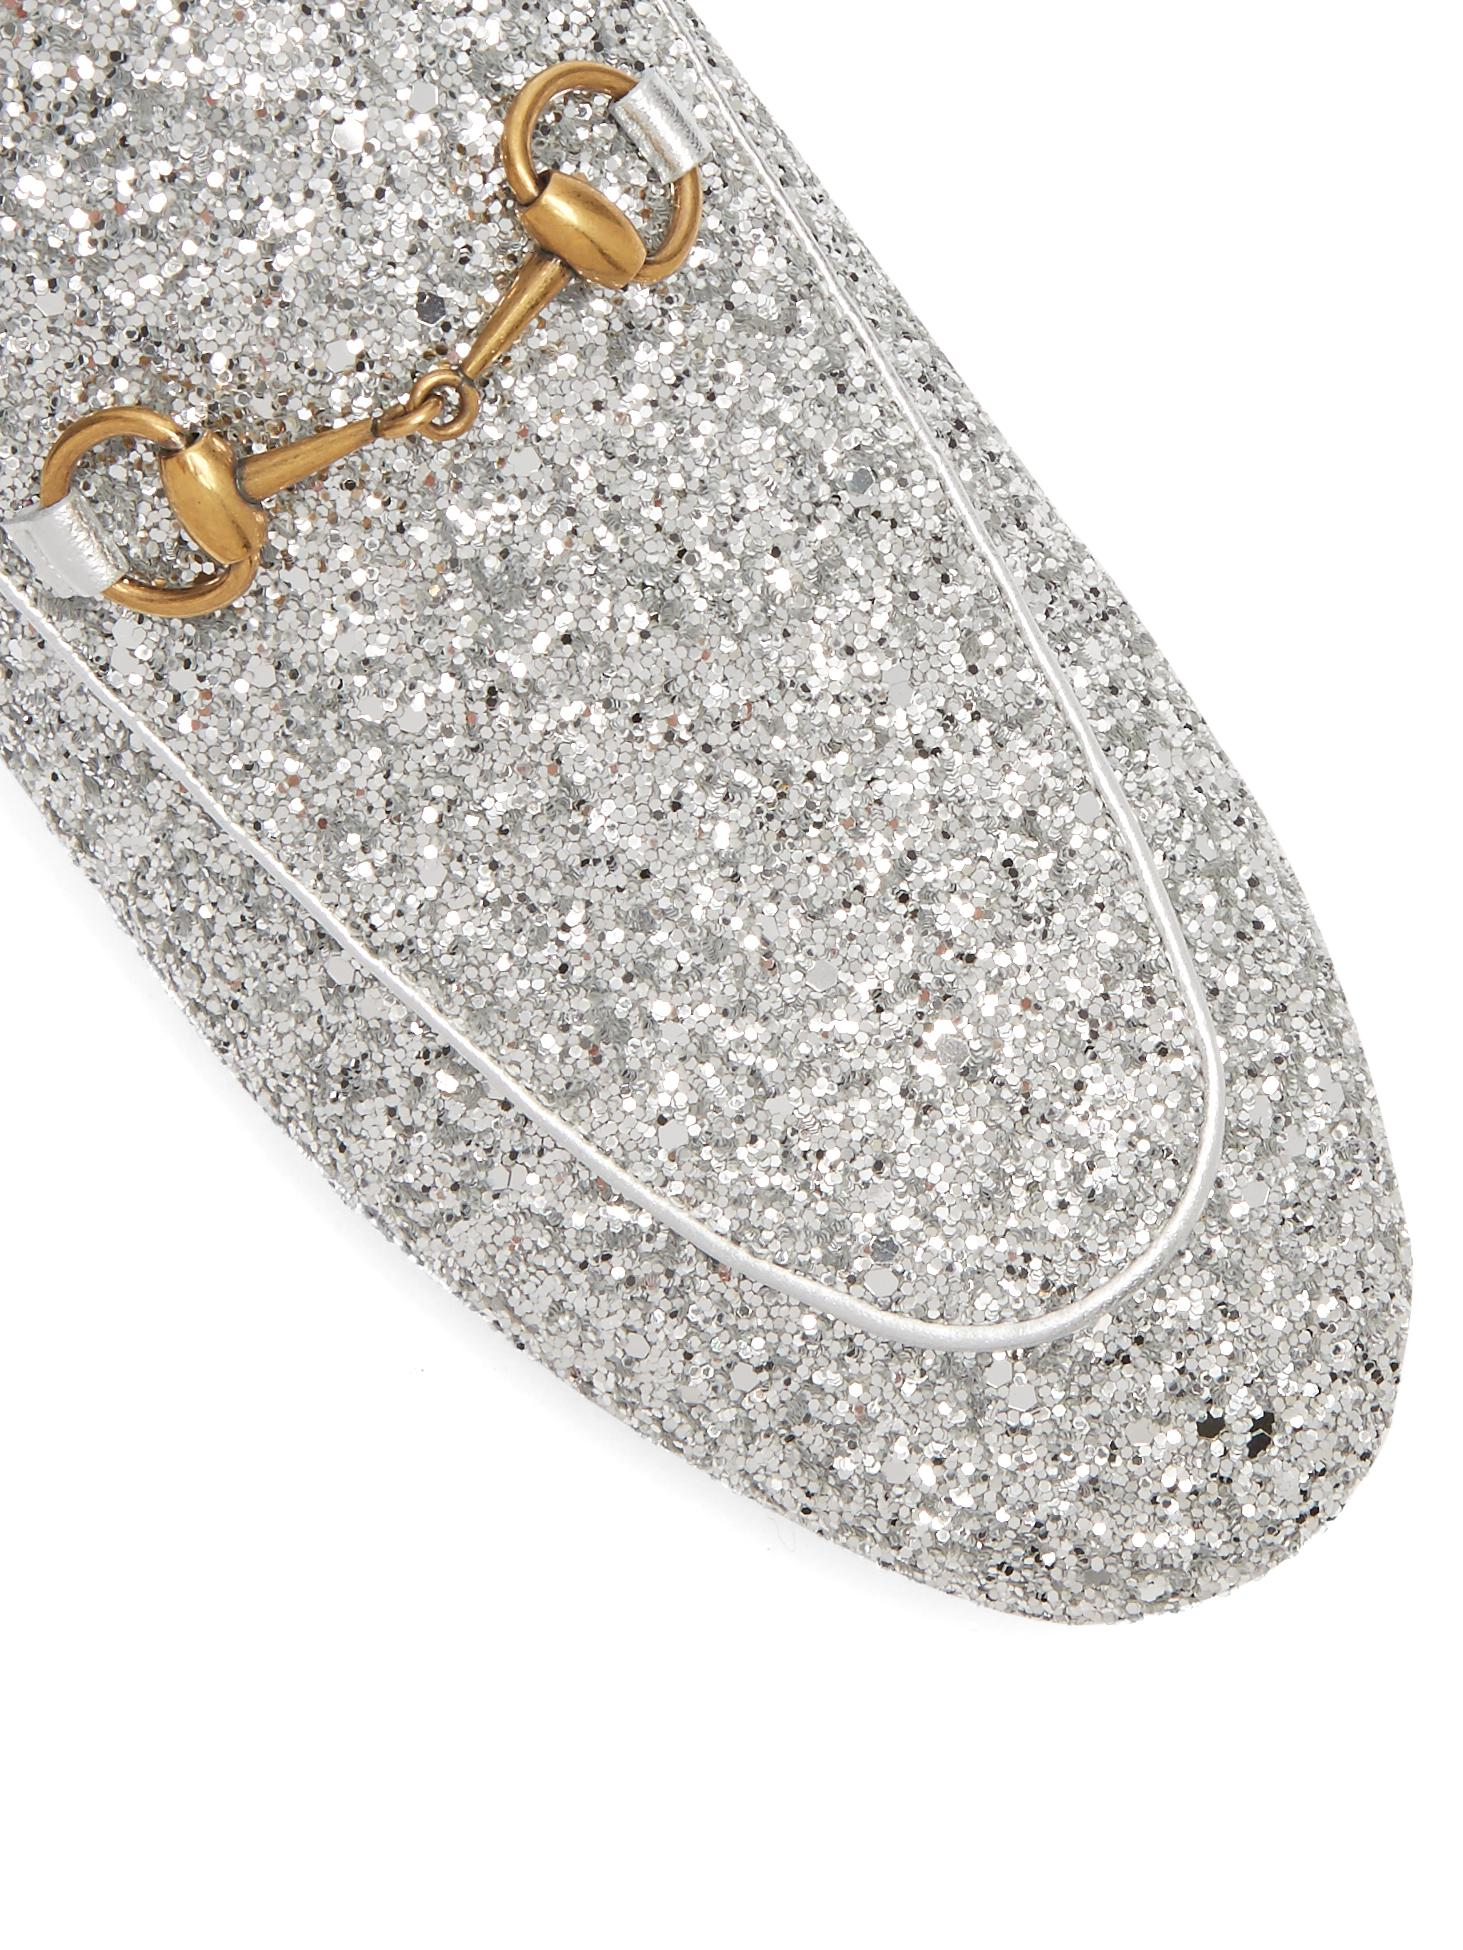 6e393a38d589 Gucci Princetown Glitter Backless Loafers in Metallic - Lyst